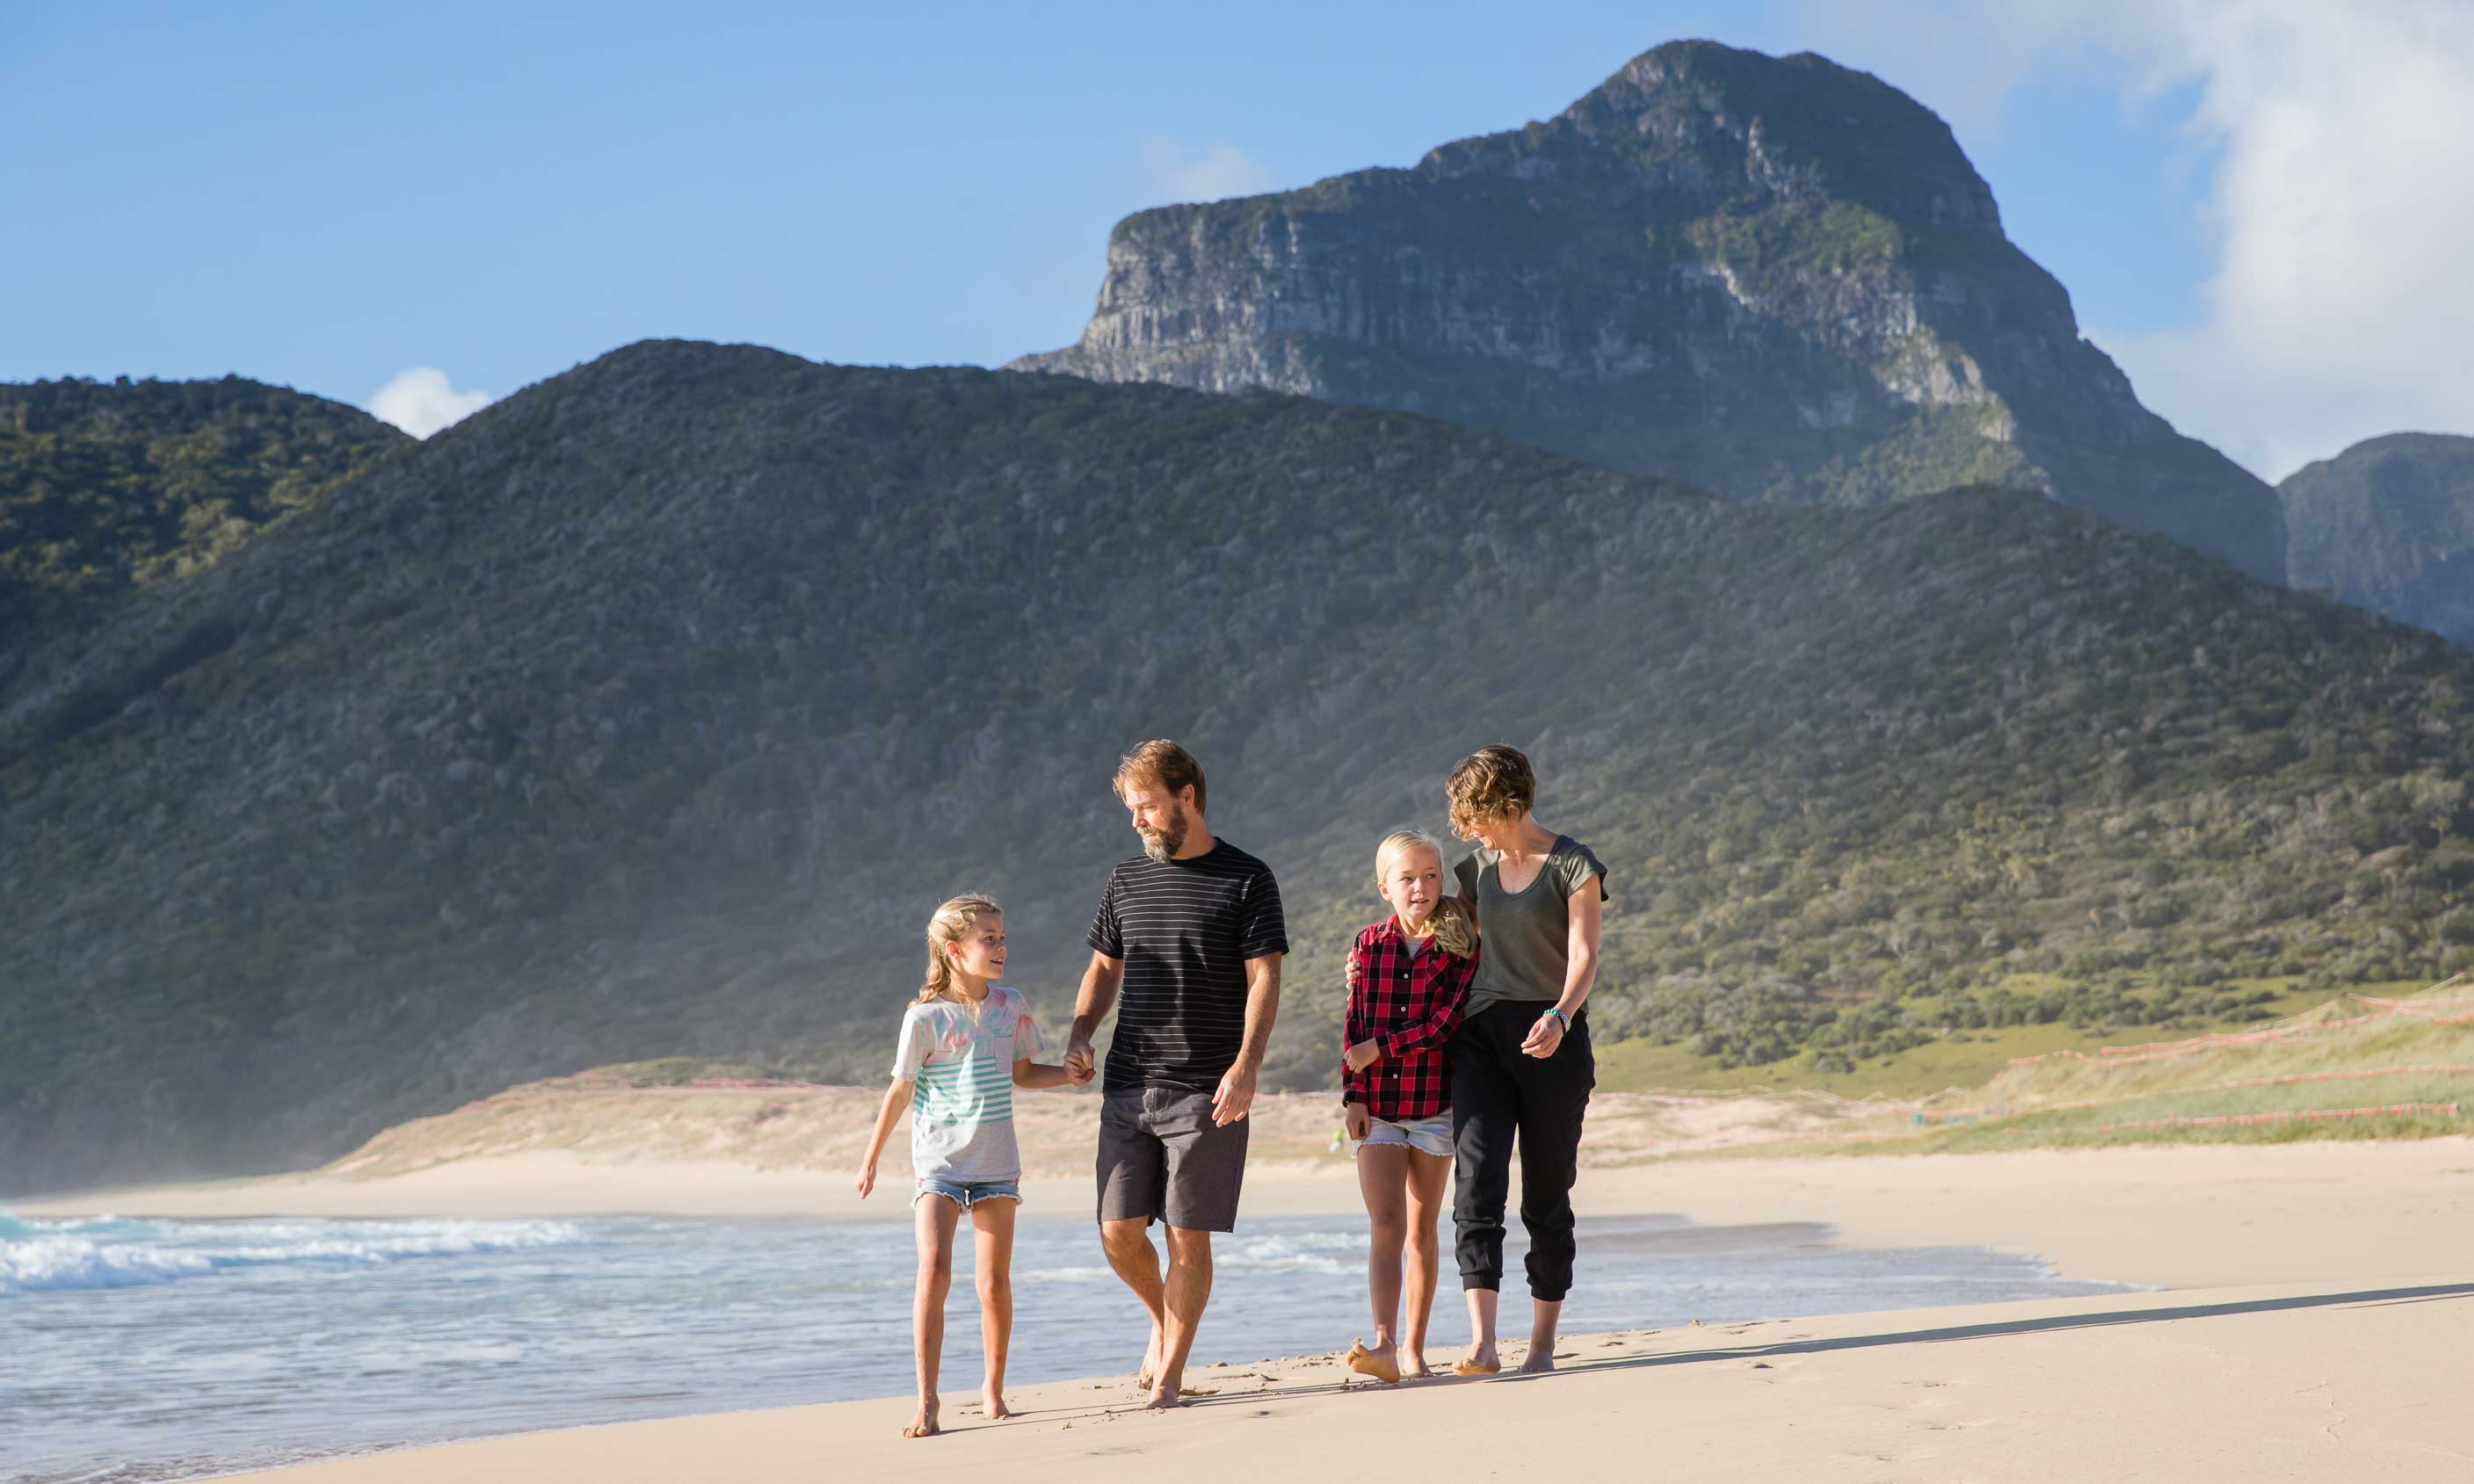 Luke Hanson, Dani Rourke and their kids Elsie and Pixie, Lord Howe Island